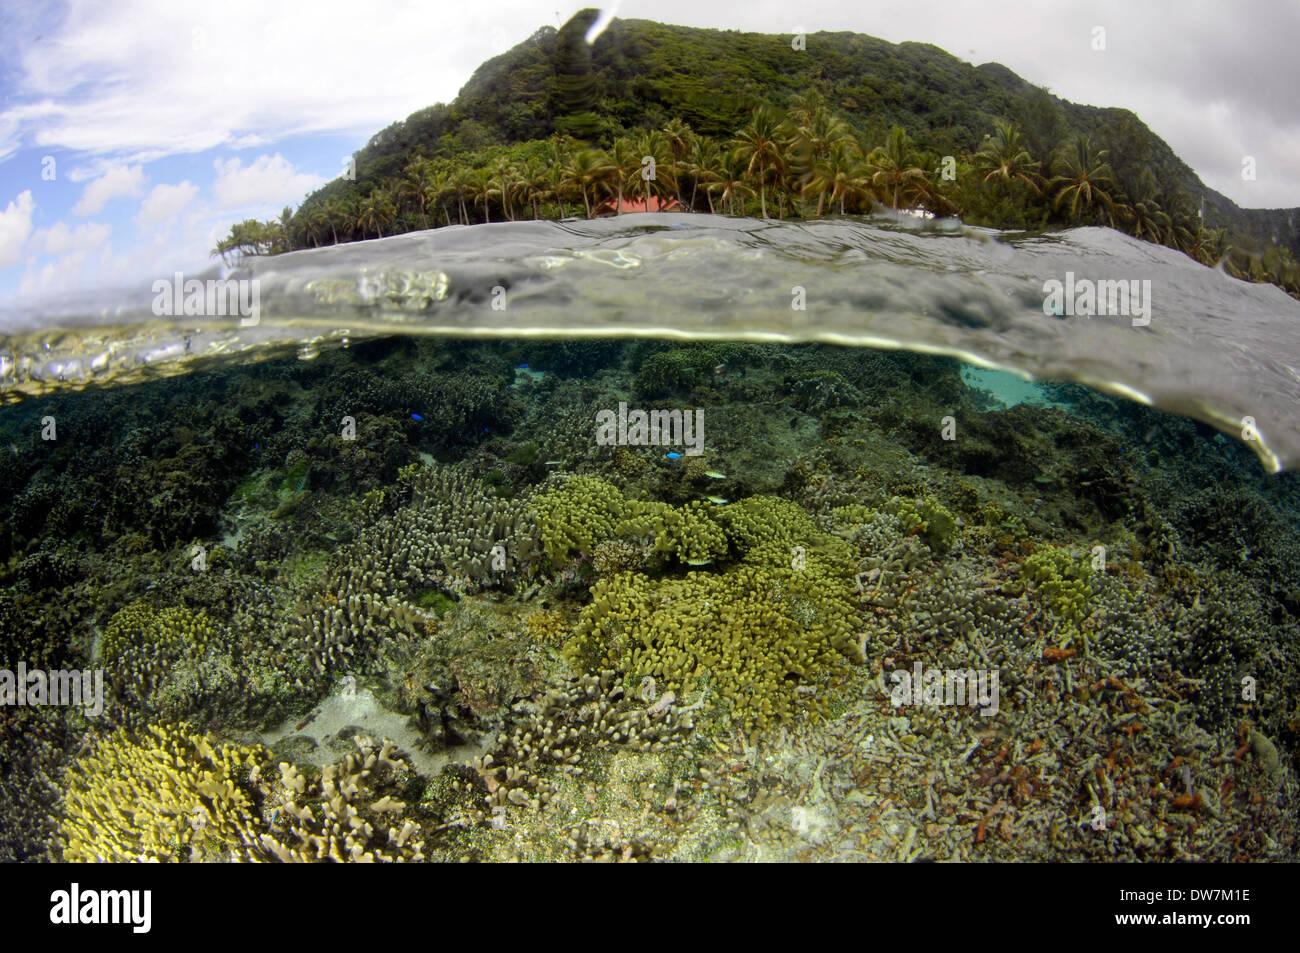 Shallow coral reef with several Acropora species, Fagaitua Bay, Pago Pago, Tutuila Island, American Samoa - Stock Image